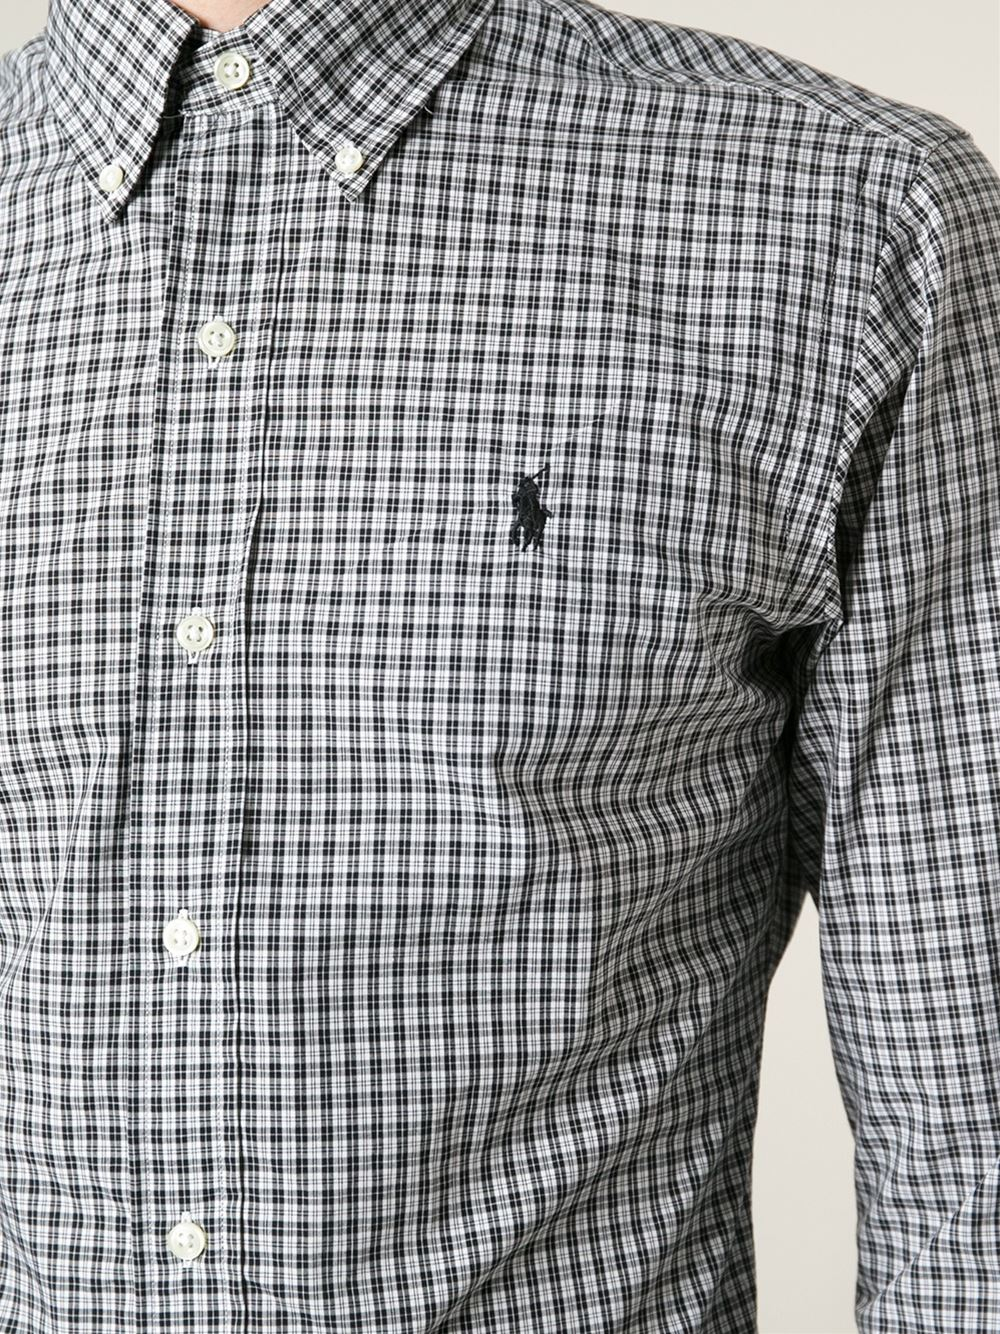 Polo ralph lauren checked button down shirt in black for for Black and white checker shirt